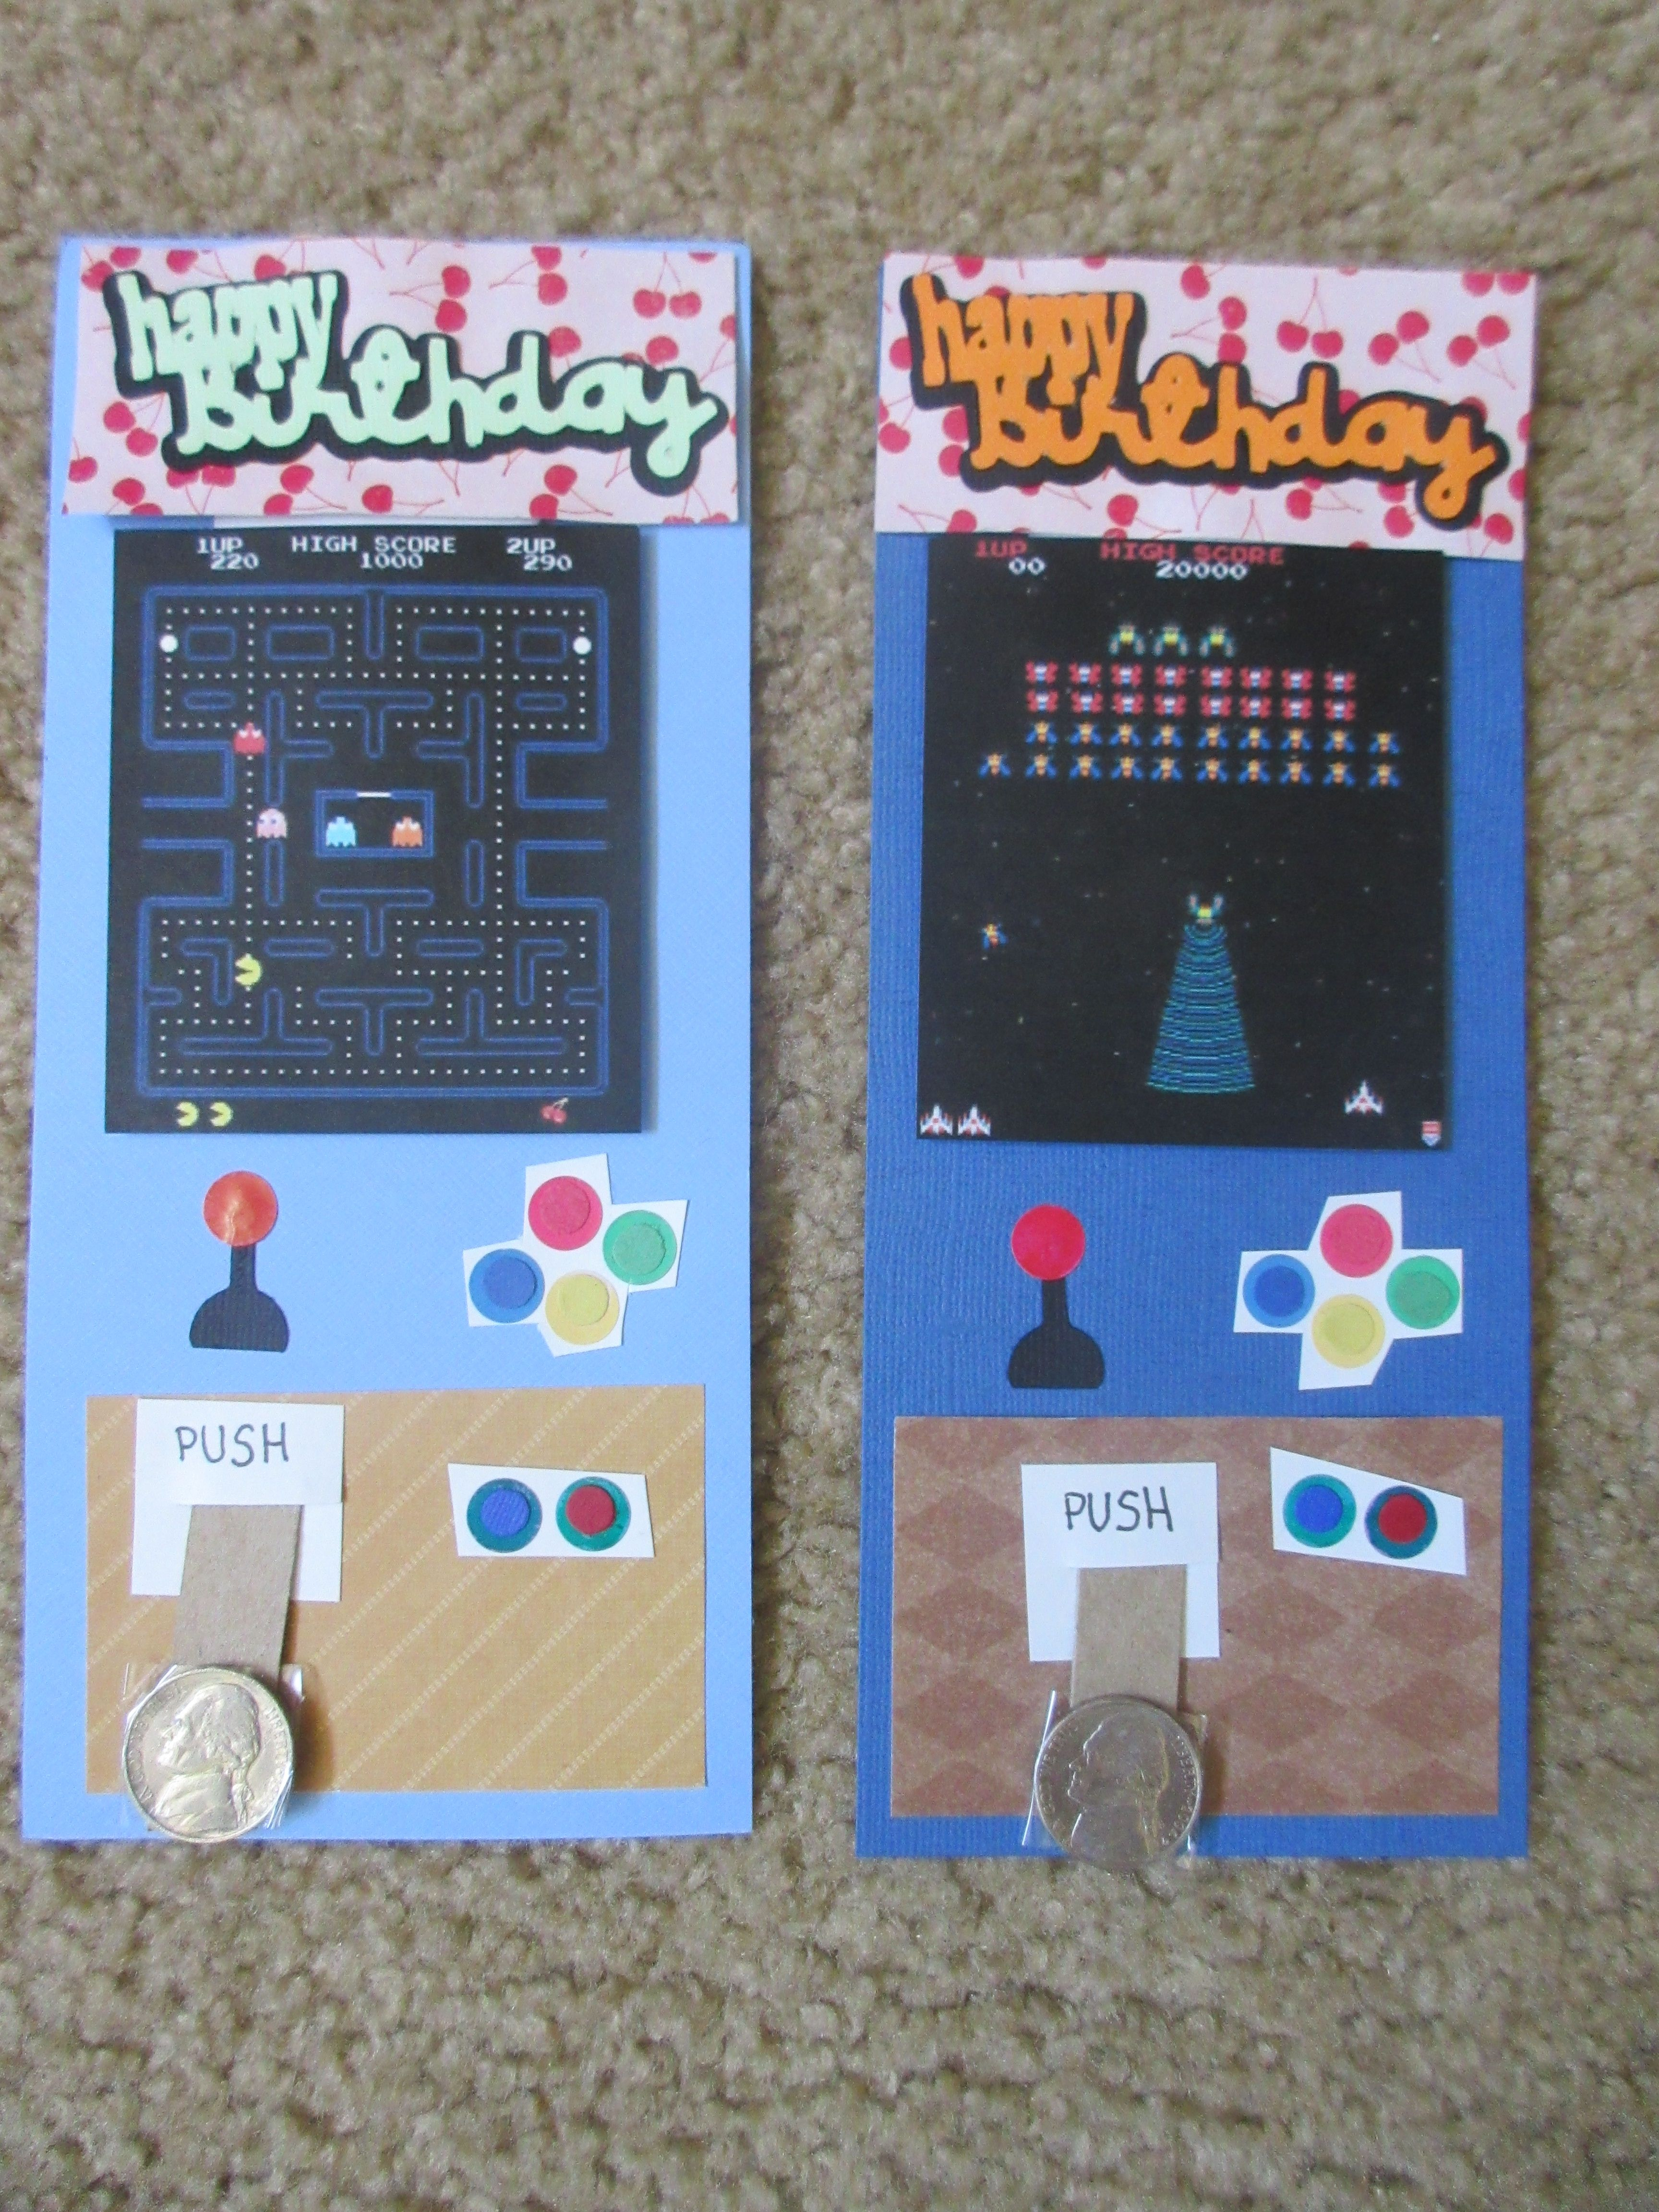 Arcade birthday card with sliding gift from coin slot